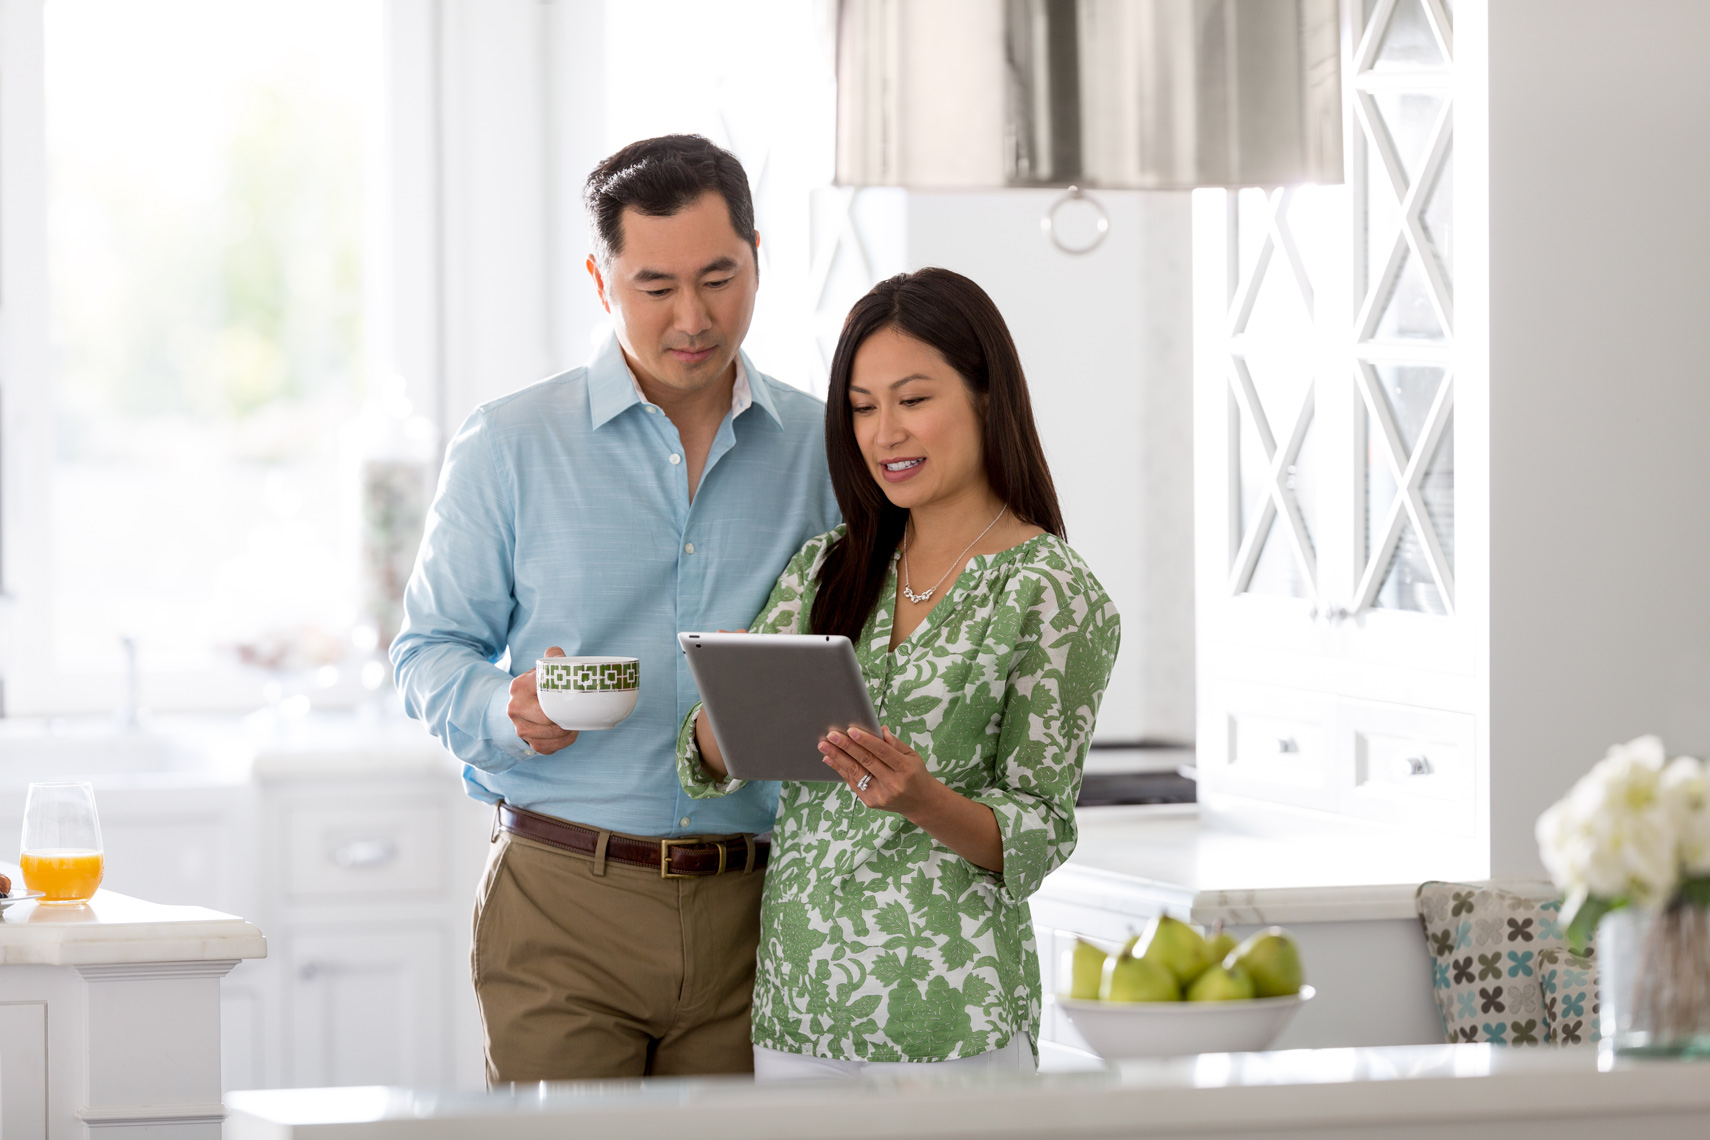 San Francisco Bay Area Advertising, Lifestyle, Commercial Photographer, young asian couple in the kitchen with ipad discussing with white background